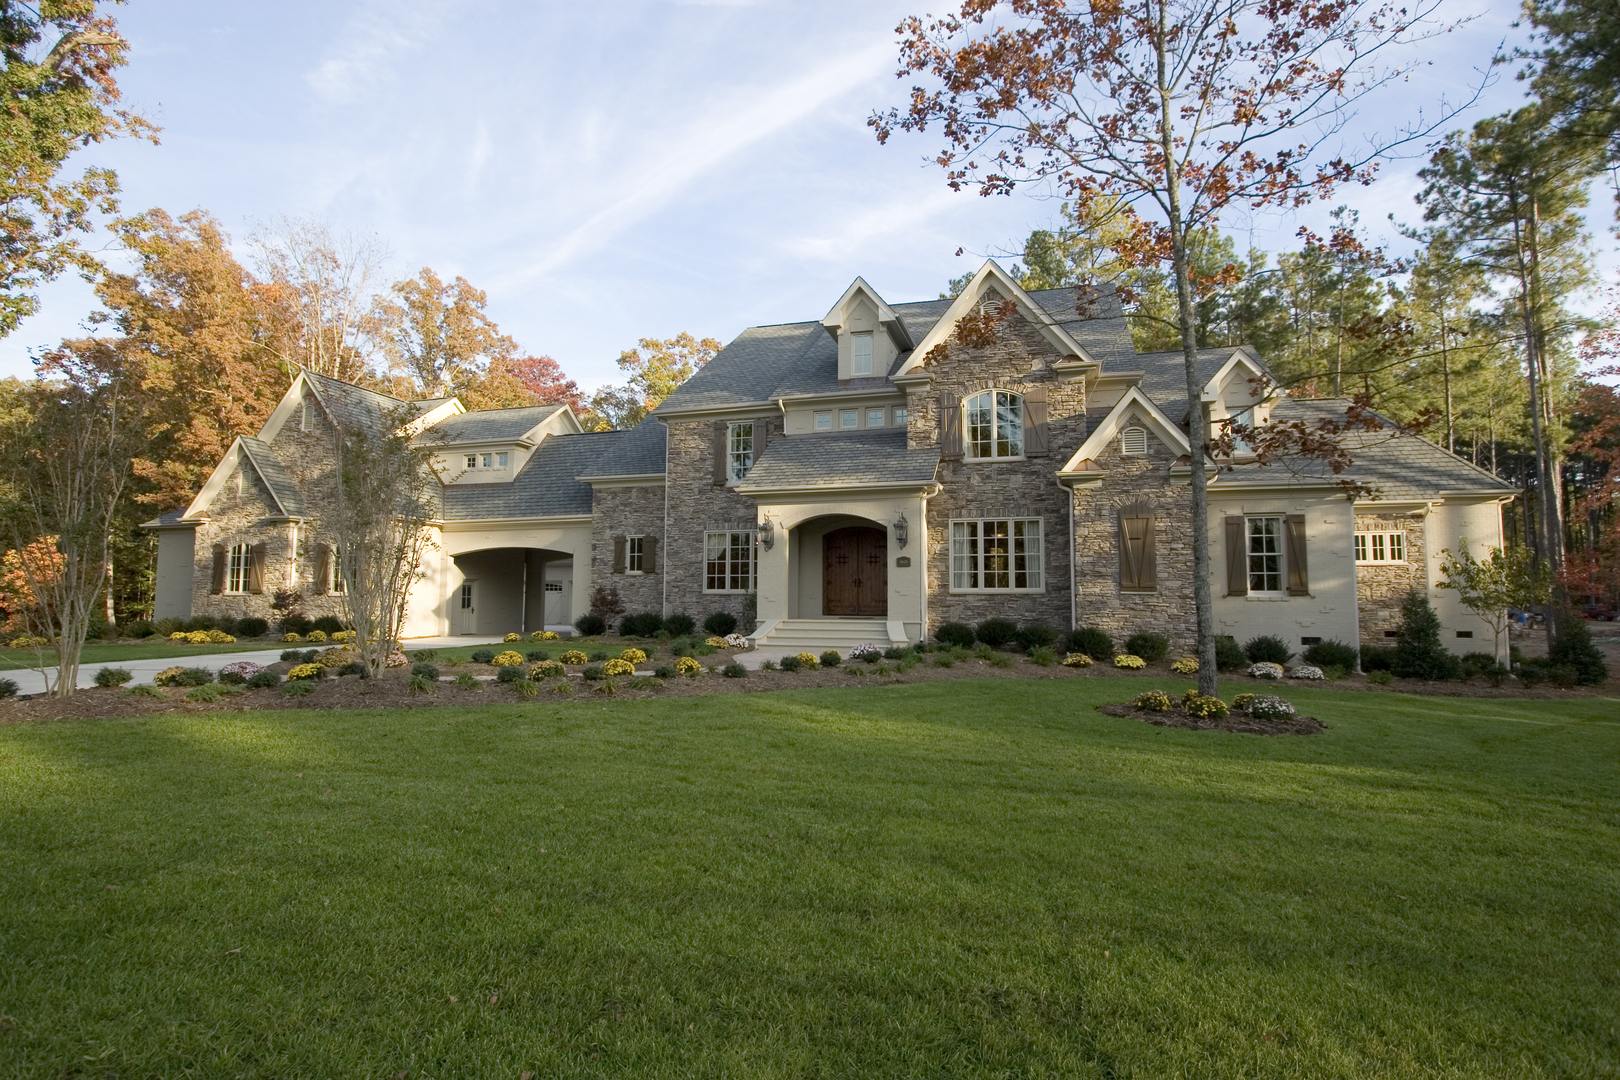 5400 Sq Ft Luxury Country Manor House Plan 134 1351 4 Bedrooms